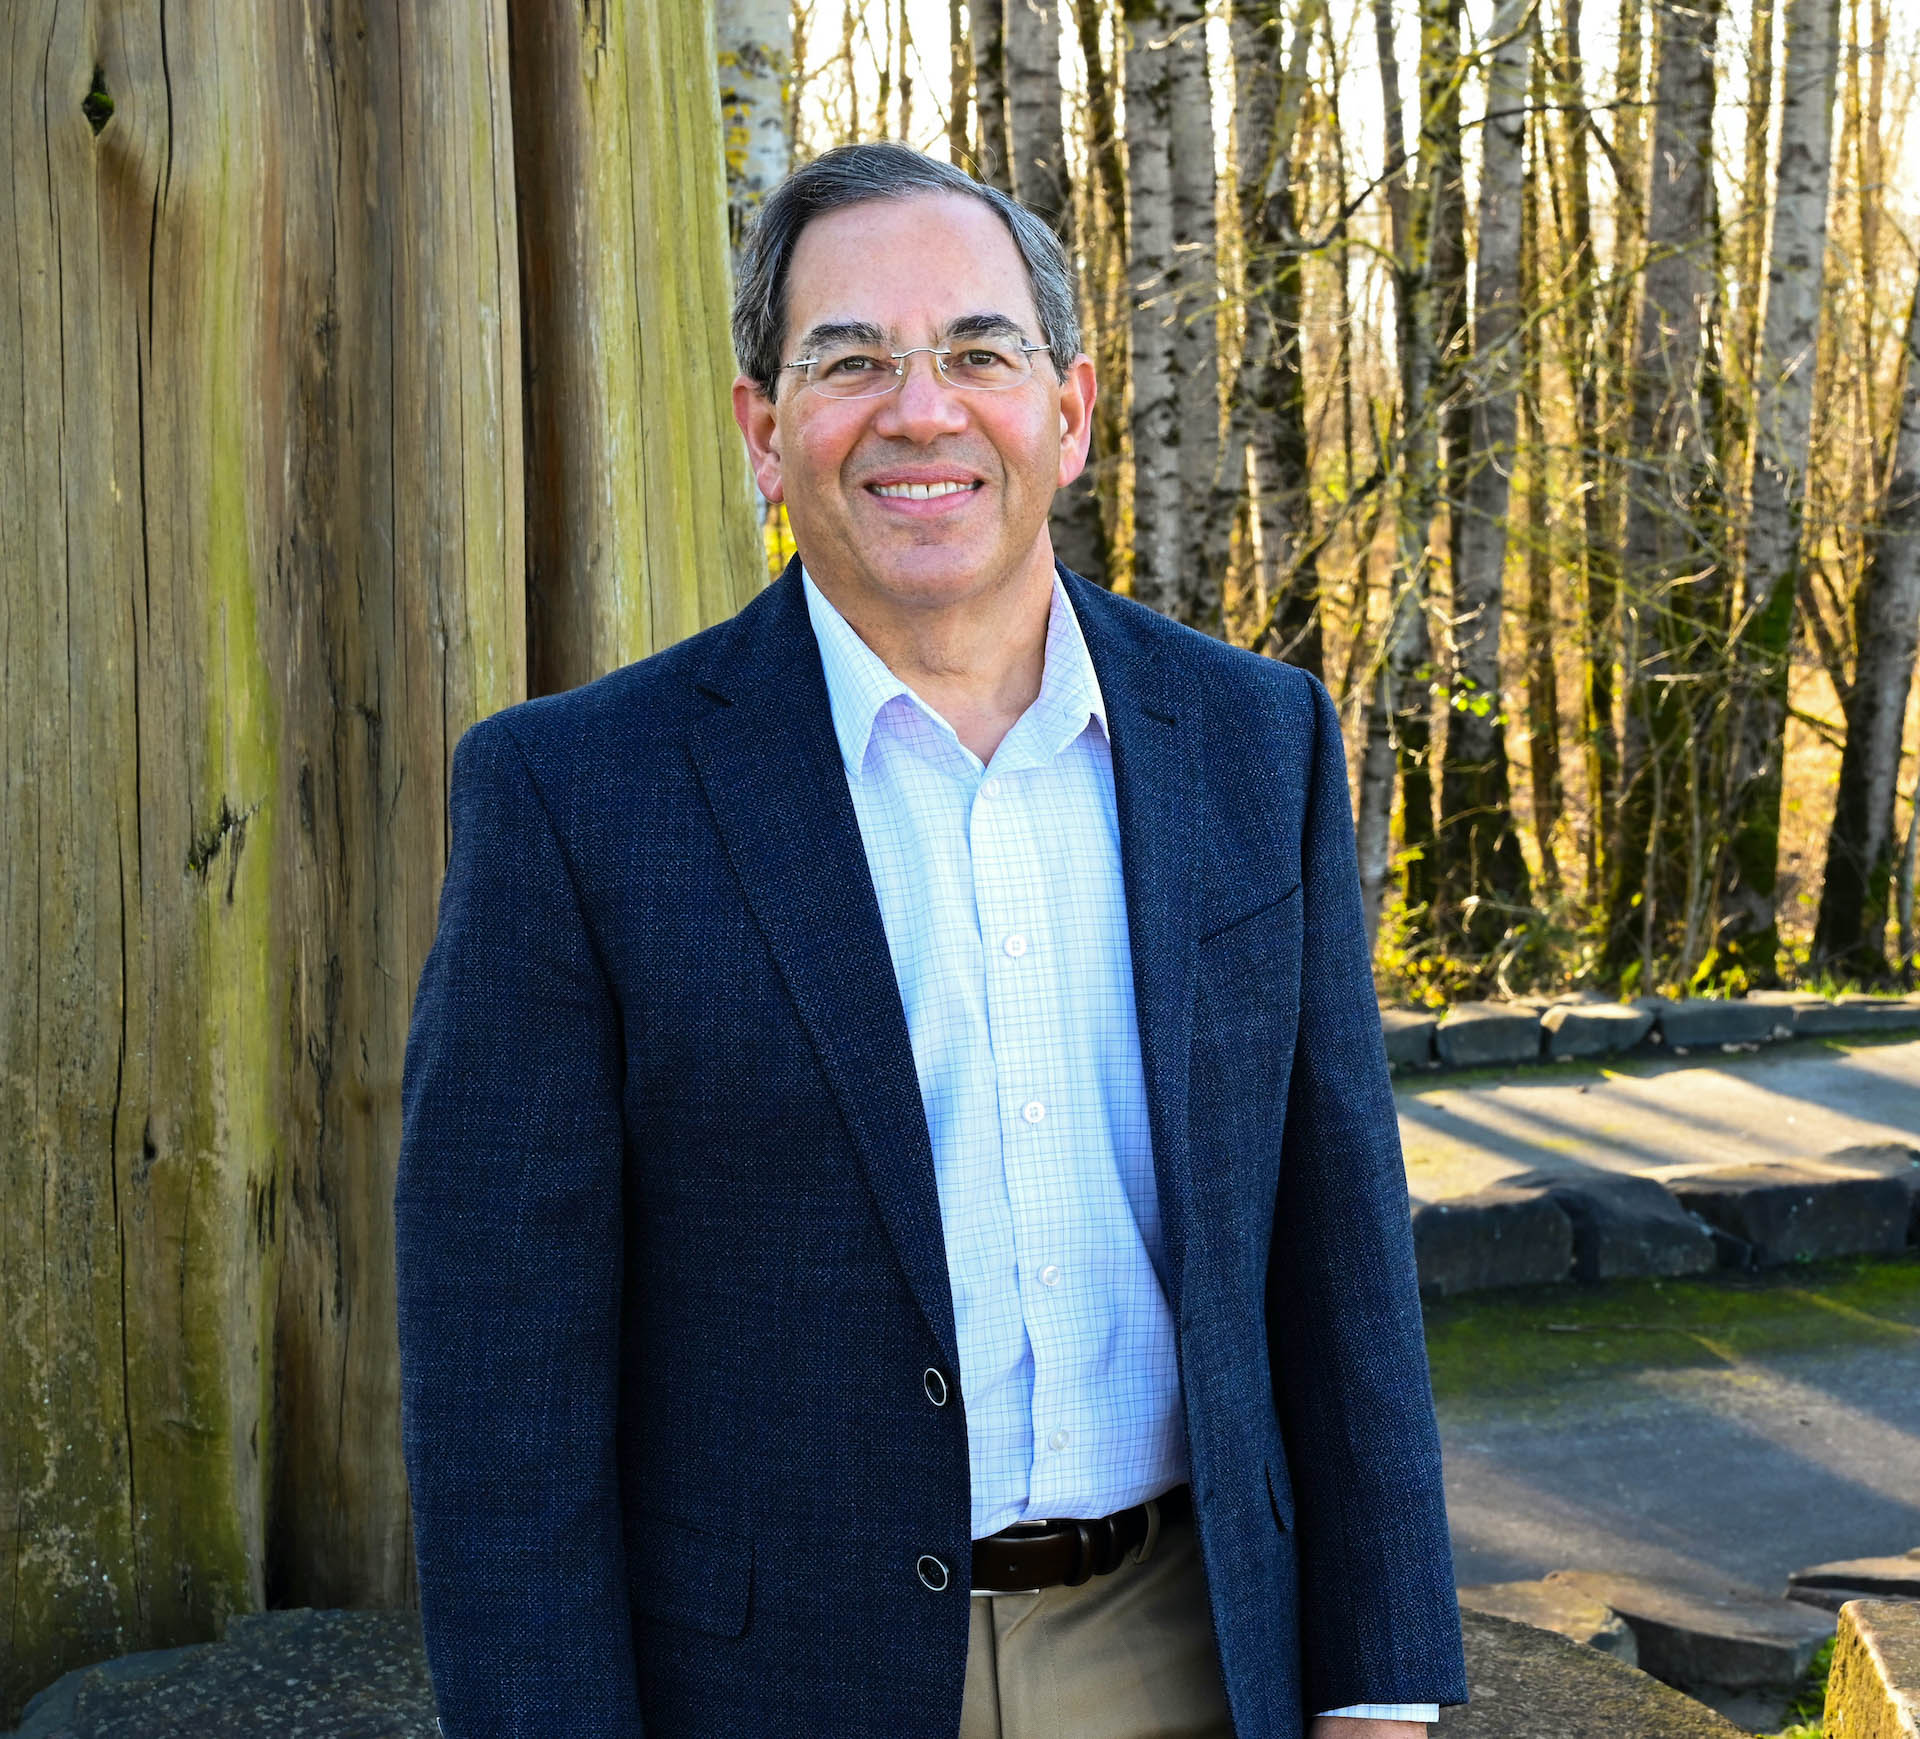 Ben Bierman consultant and founder of Integration Advantage is seen standing outside wearing a Blue Jacket and surrounded by trees and nature in the Pacific Northwest.